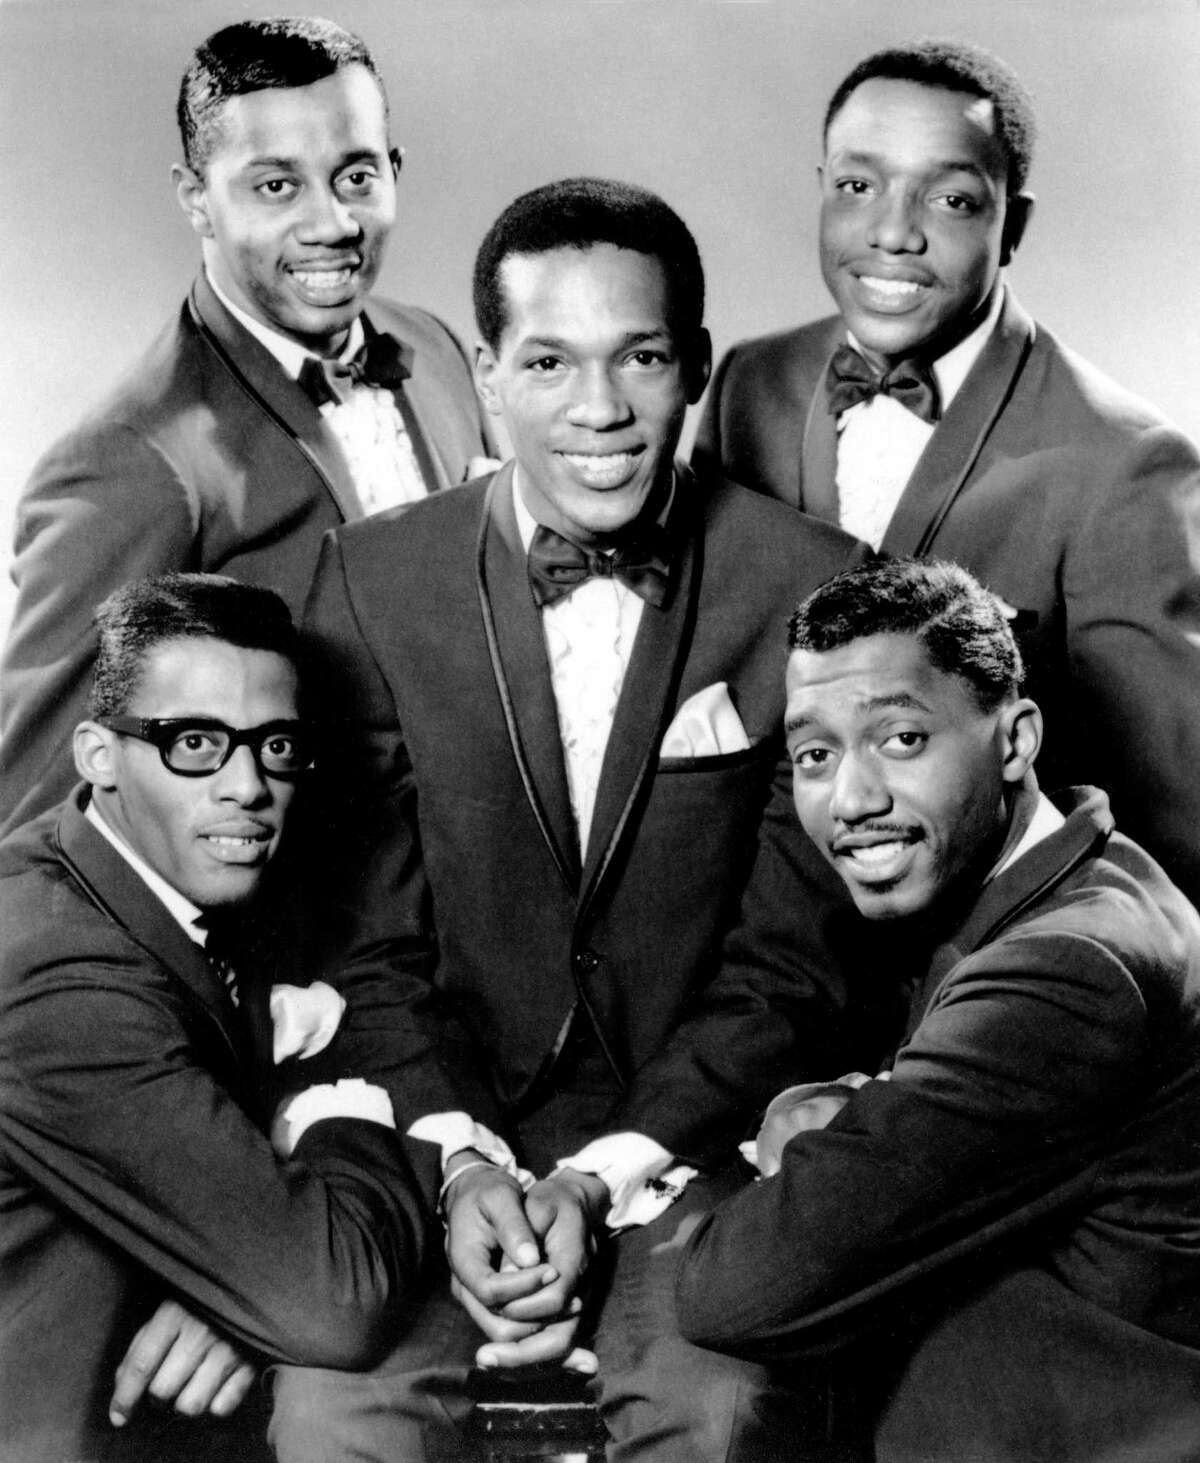 July 6 - The Temptations The Temptations had a big hit with